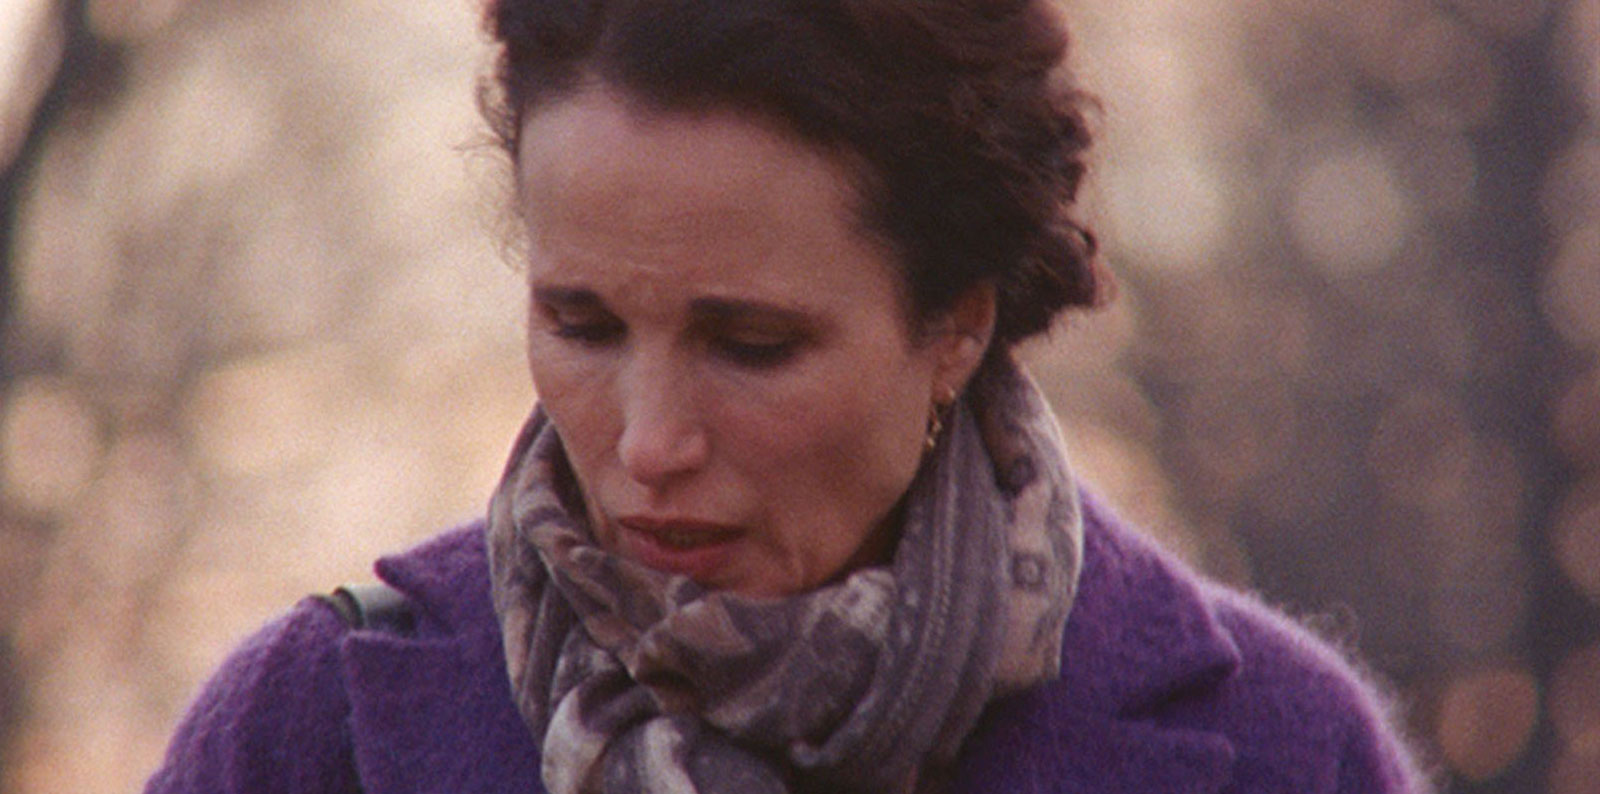 Andie Macdowell Nude In Love After Love love after love | film threat